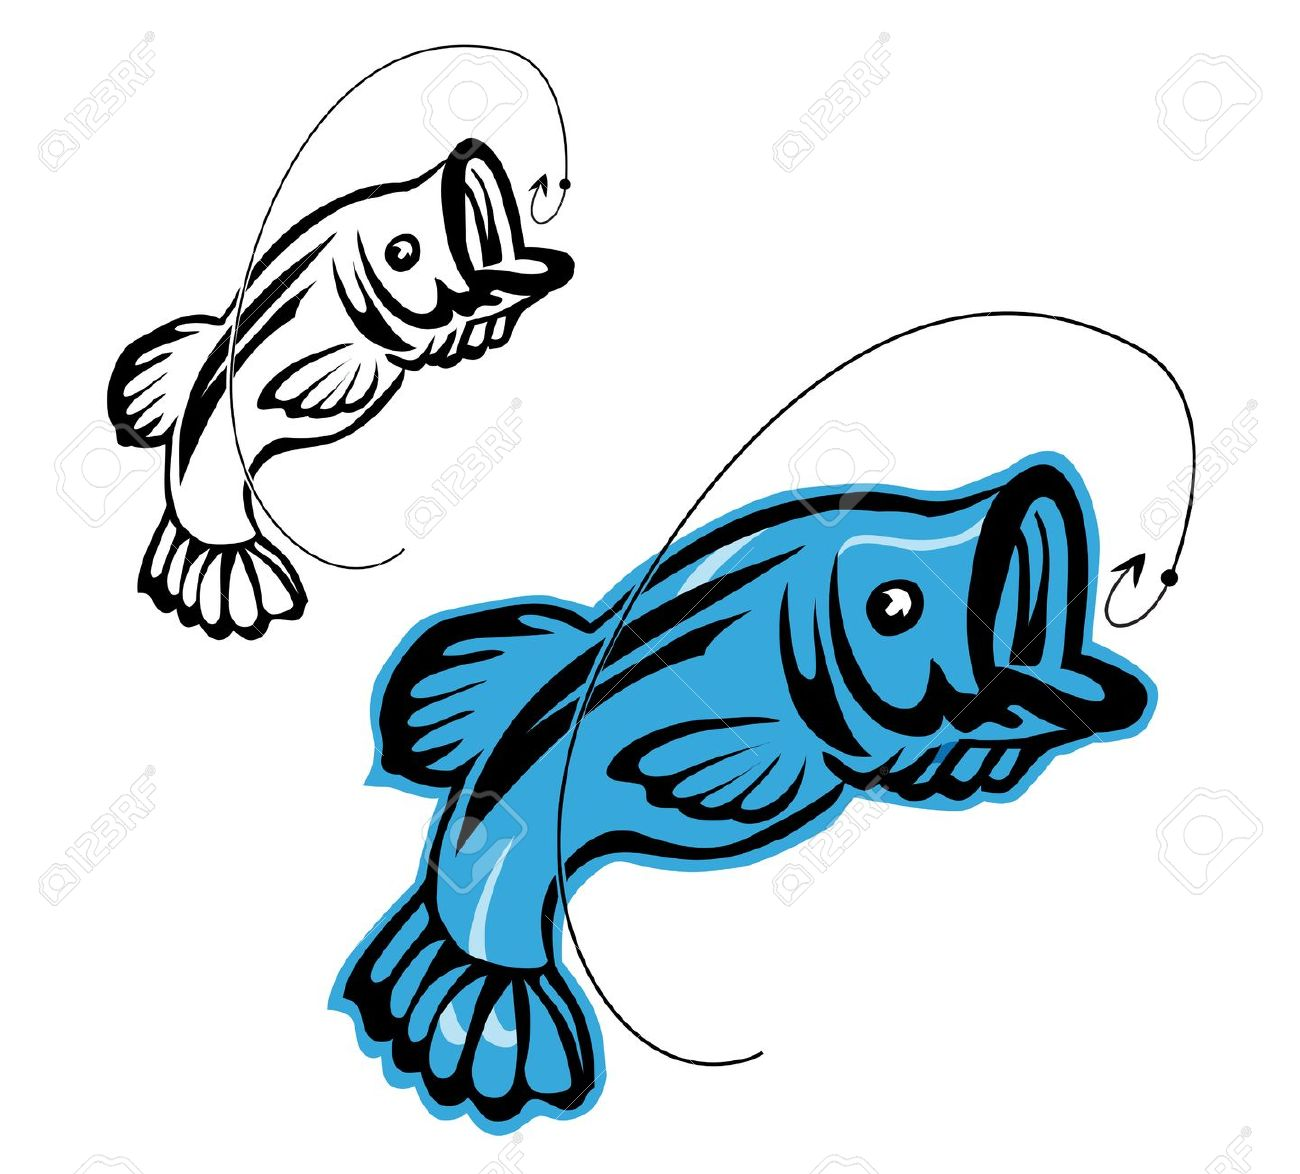 Fisherman clipart bass fishing Clipart clipart Bass free collection